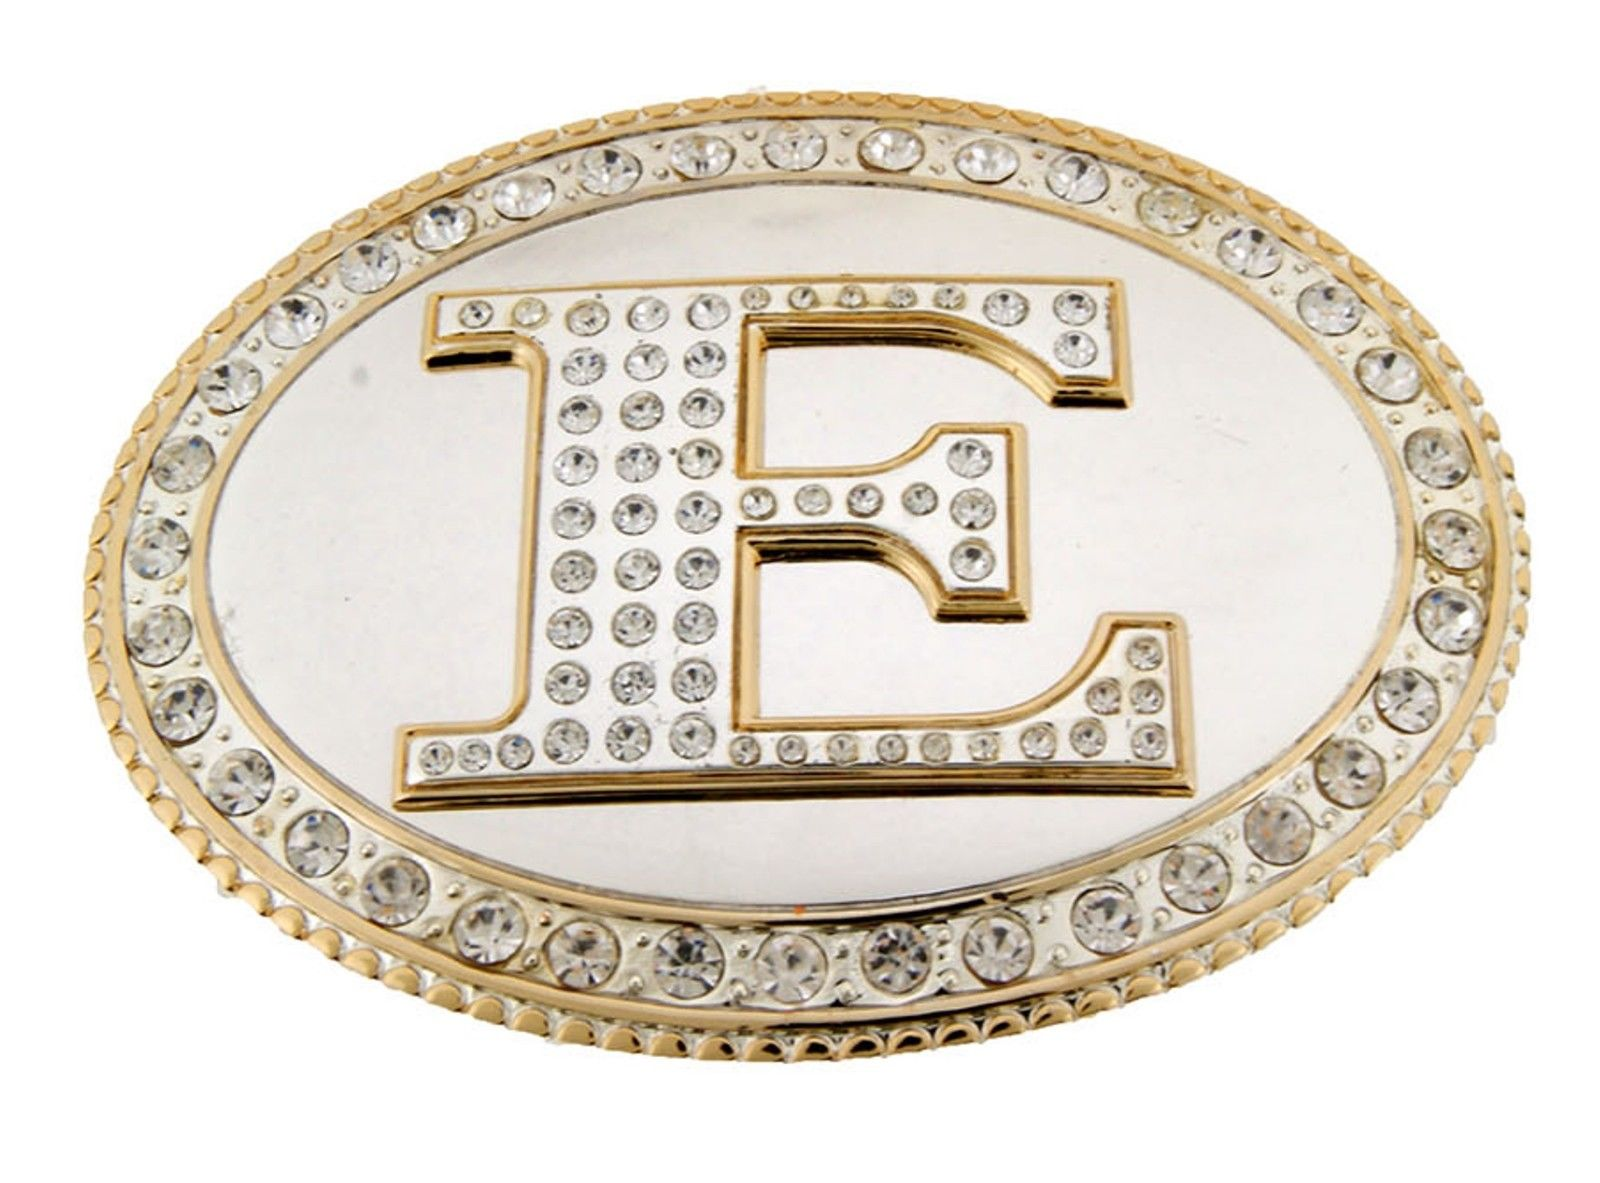 Big Initial Belt Buckle Monogram Letter Alphabet Texas USA Rodeo Western Cowboy